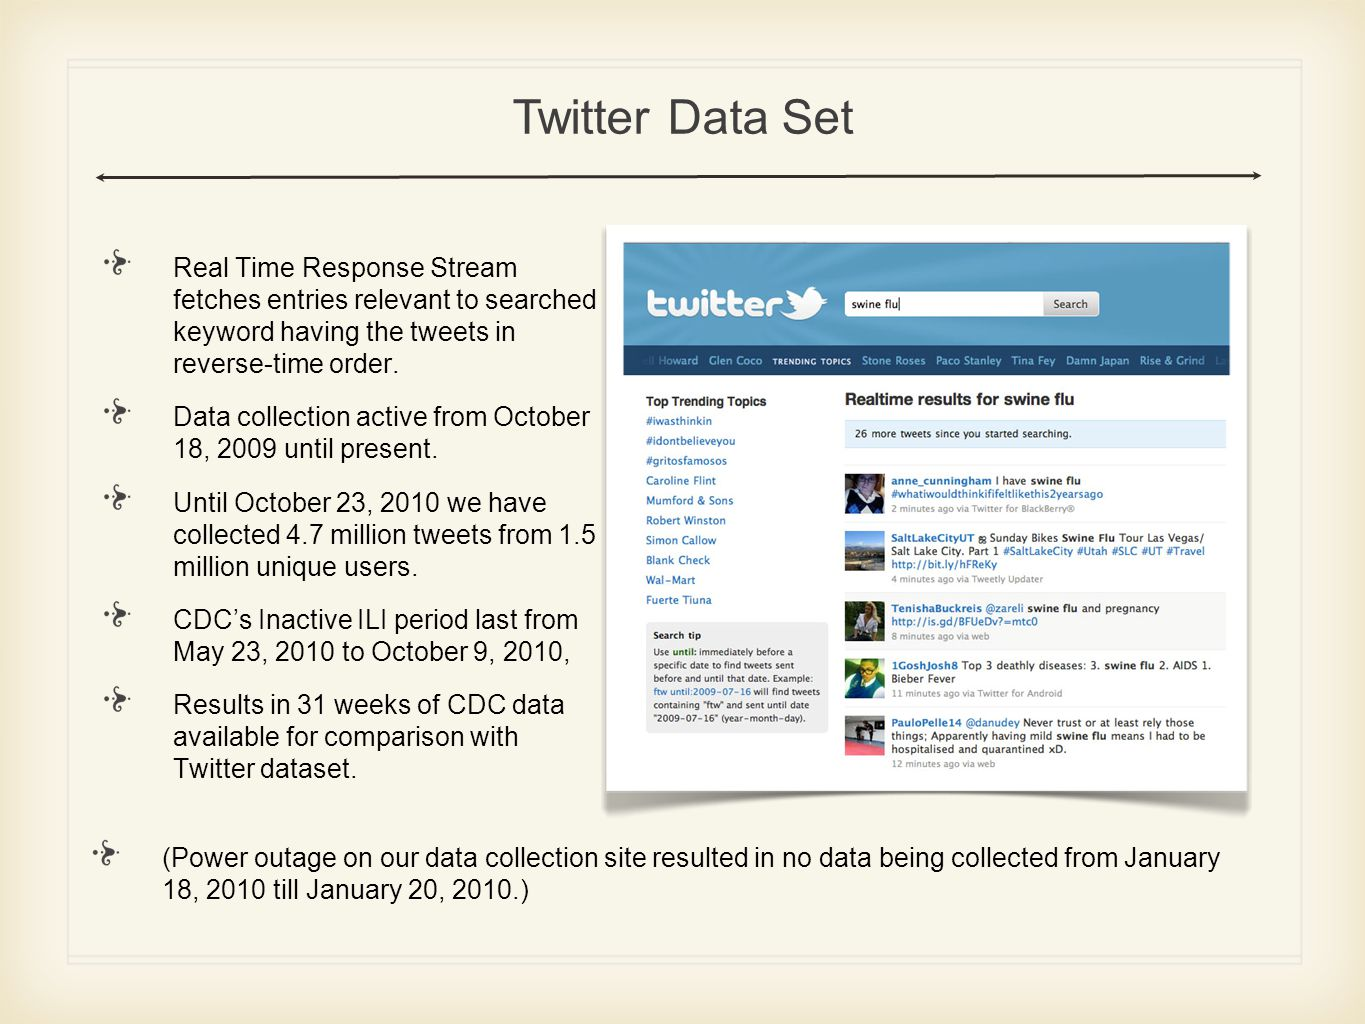 Spatio Temporal Database for Twitter Data Set Crawler uses Streaming Real time Search Application Programming Interface (API) to fetch data at regular time intervals.